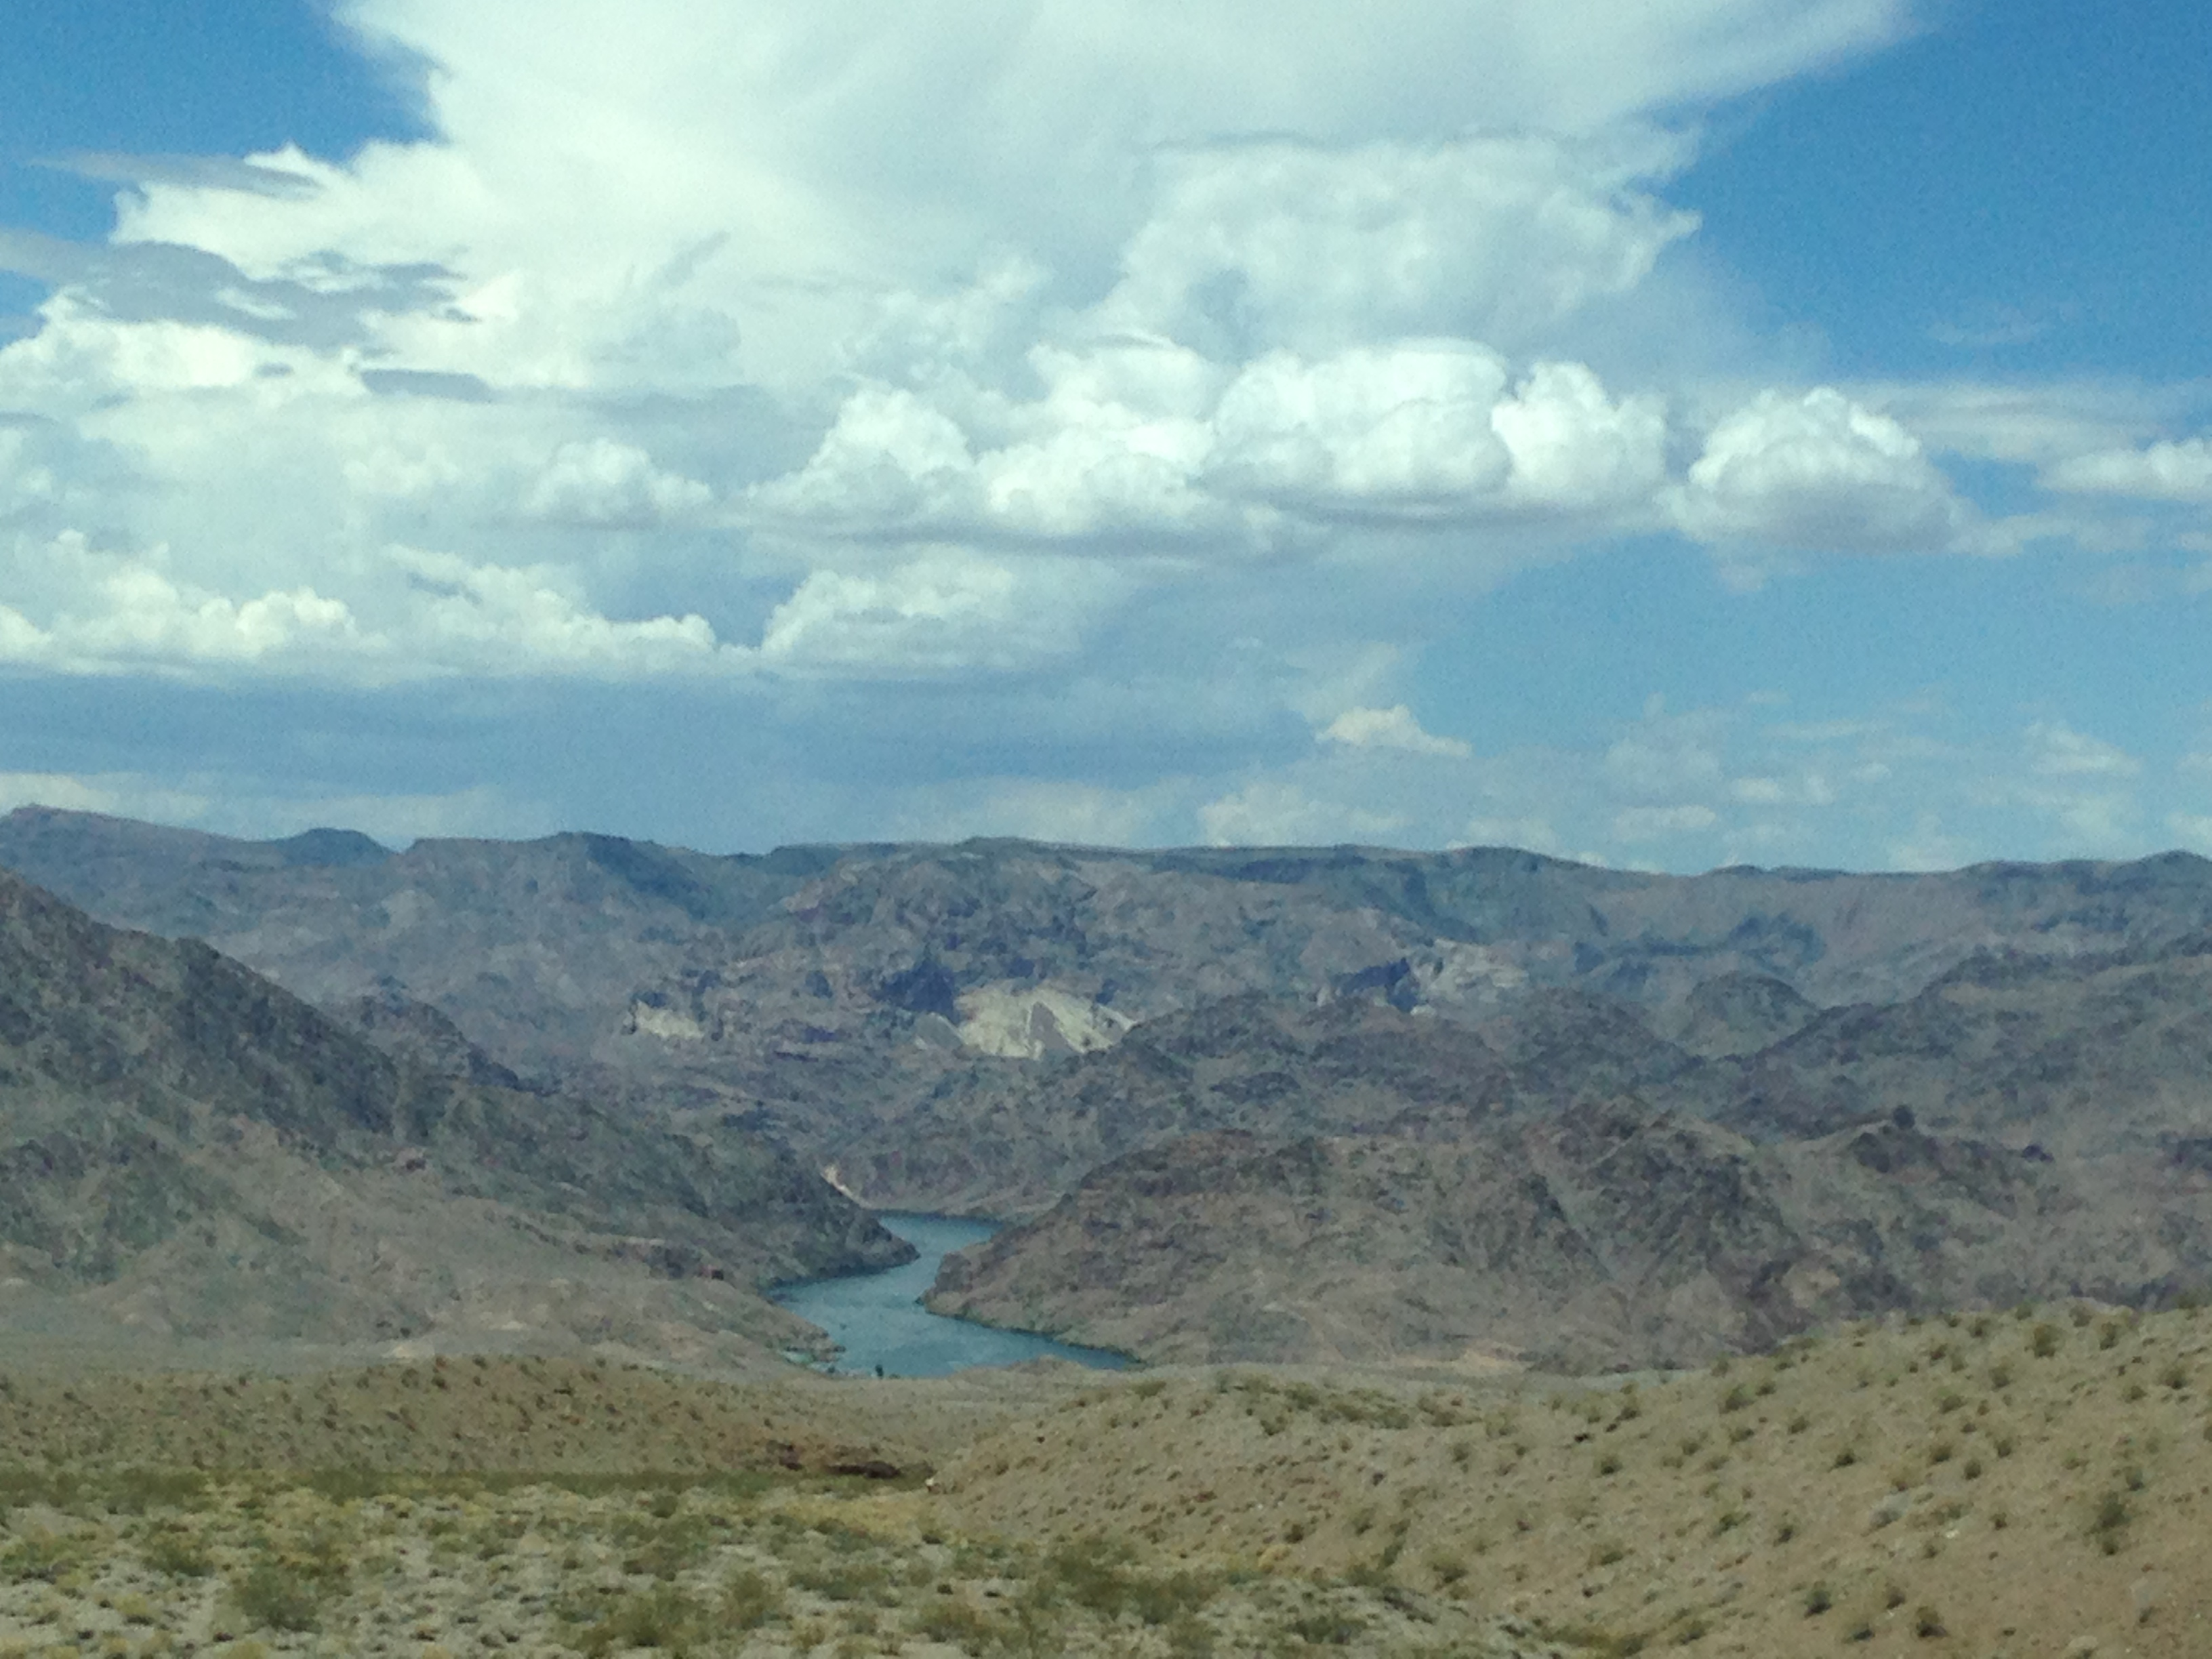 Days 34-36: Utah, Nevada, Arizona & California